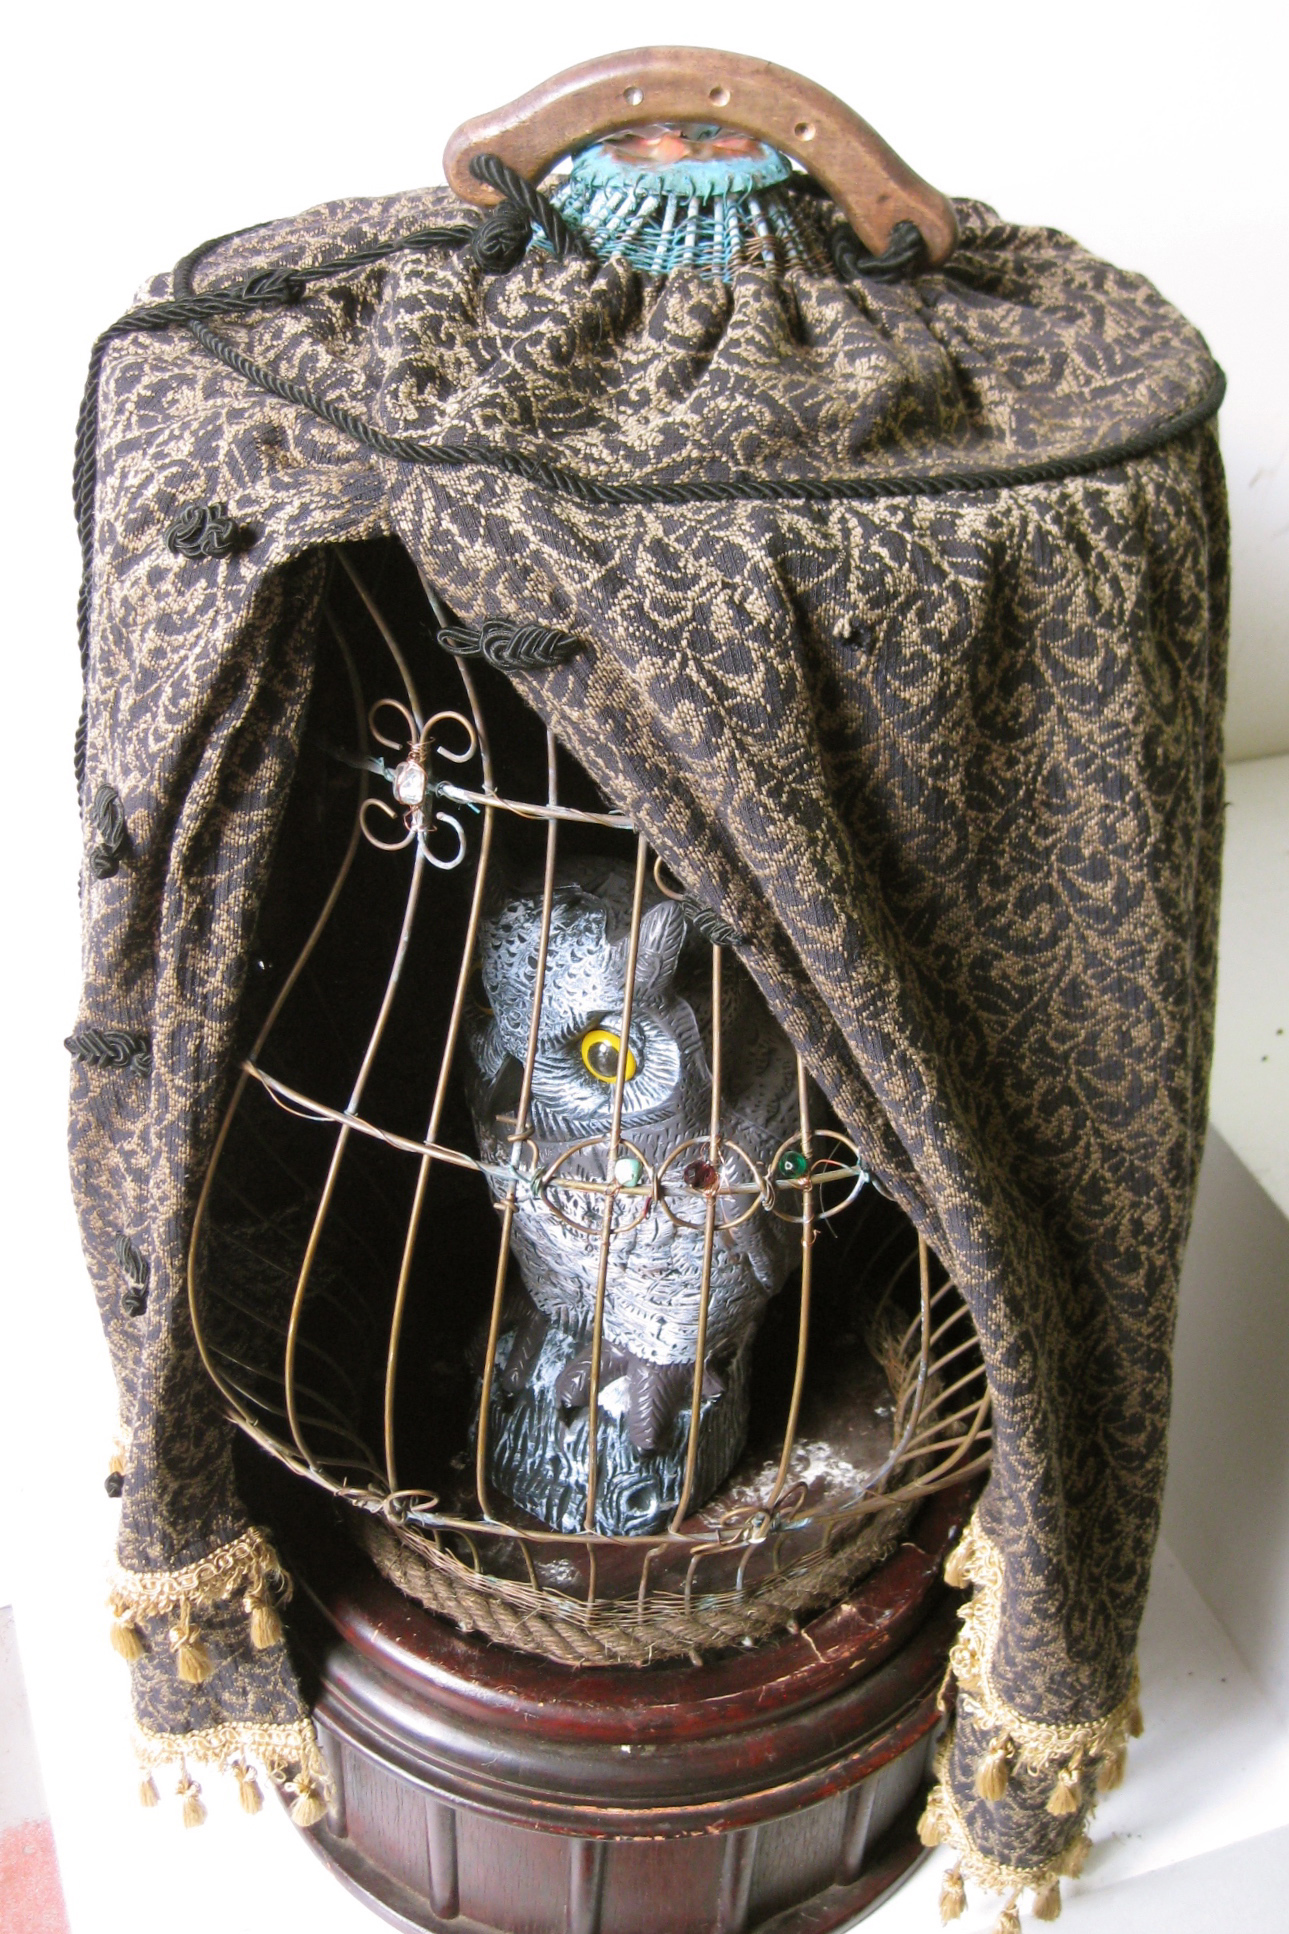 BIR0115 BIRDCAGE COVER, For Ornate Large Cage $12.50